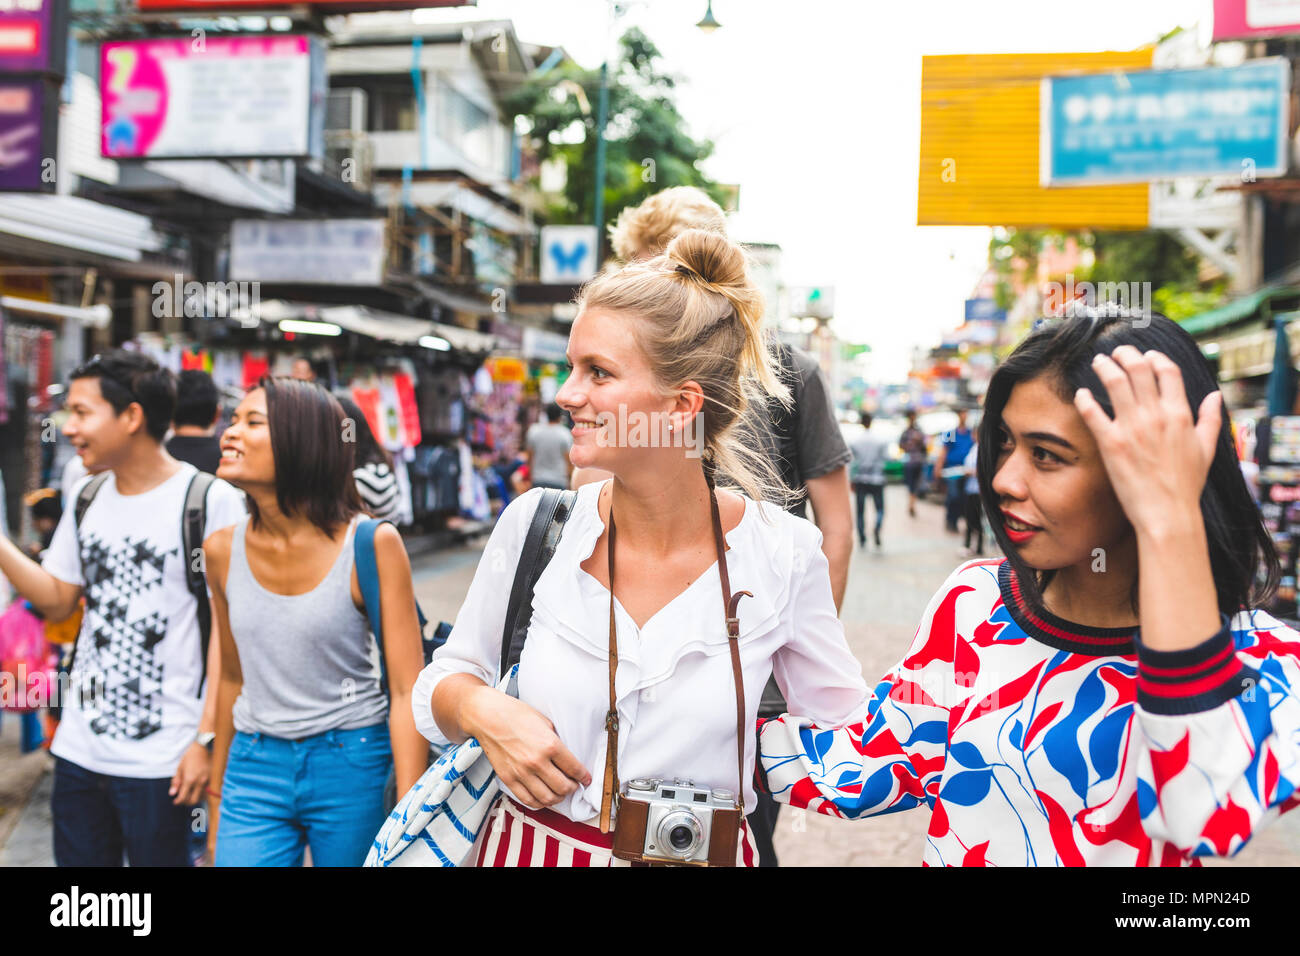 Thailand, Bangkok, Khao San Road, group of friends exploring the city - Stock Image